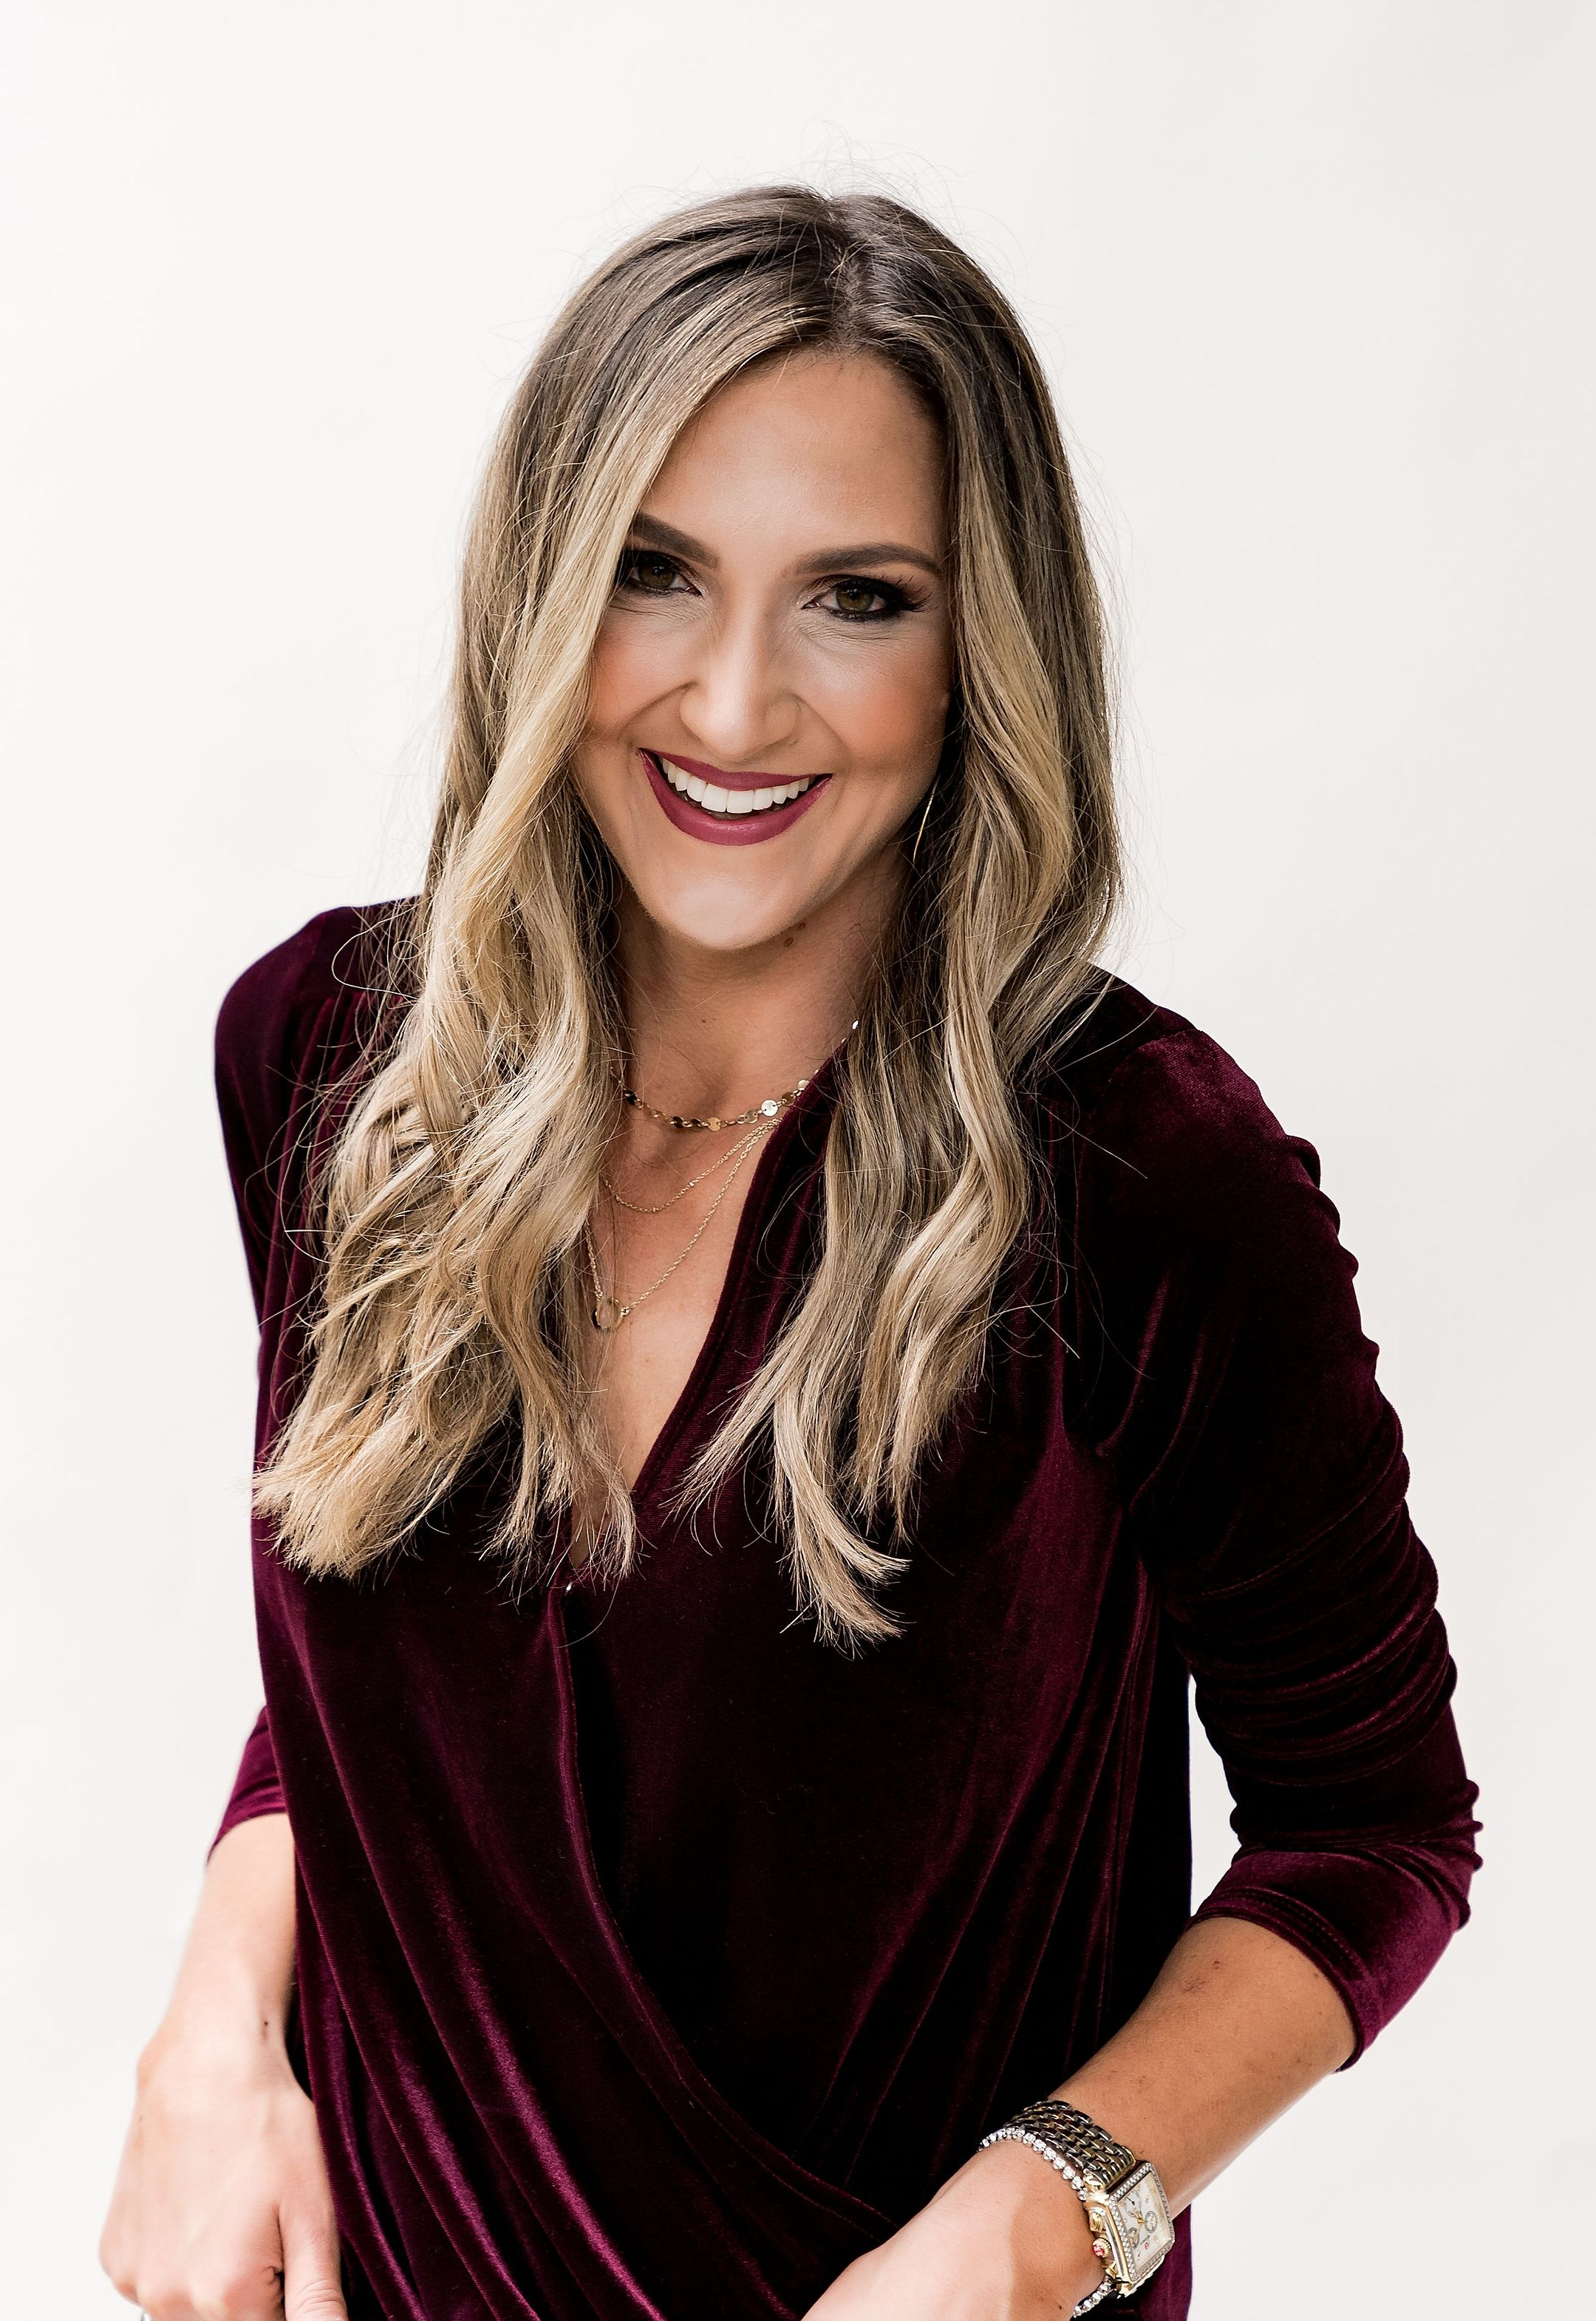 gibson glam holiday outfit ideas - the MALLORY velvet wrap top in burgundy